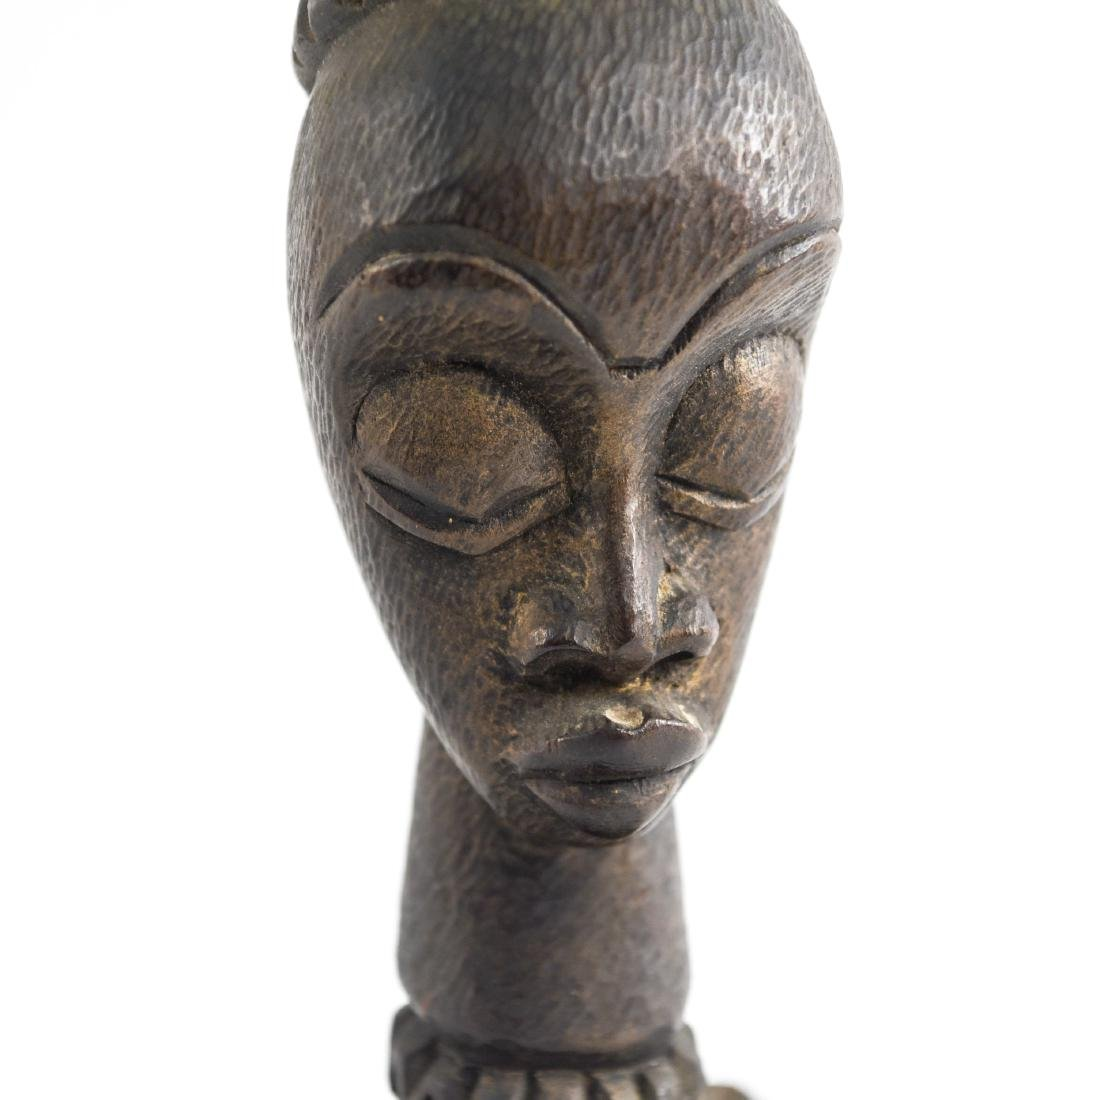 GROUPING OF HAITIAN CARVED WOODEN MASKS - 18